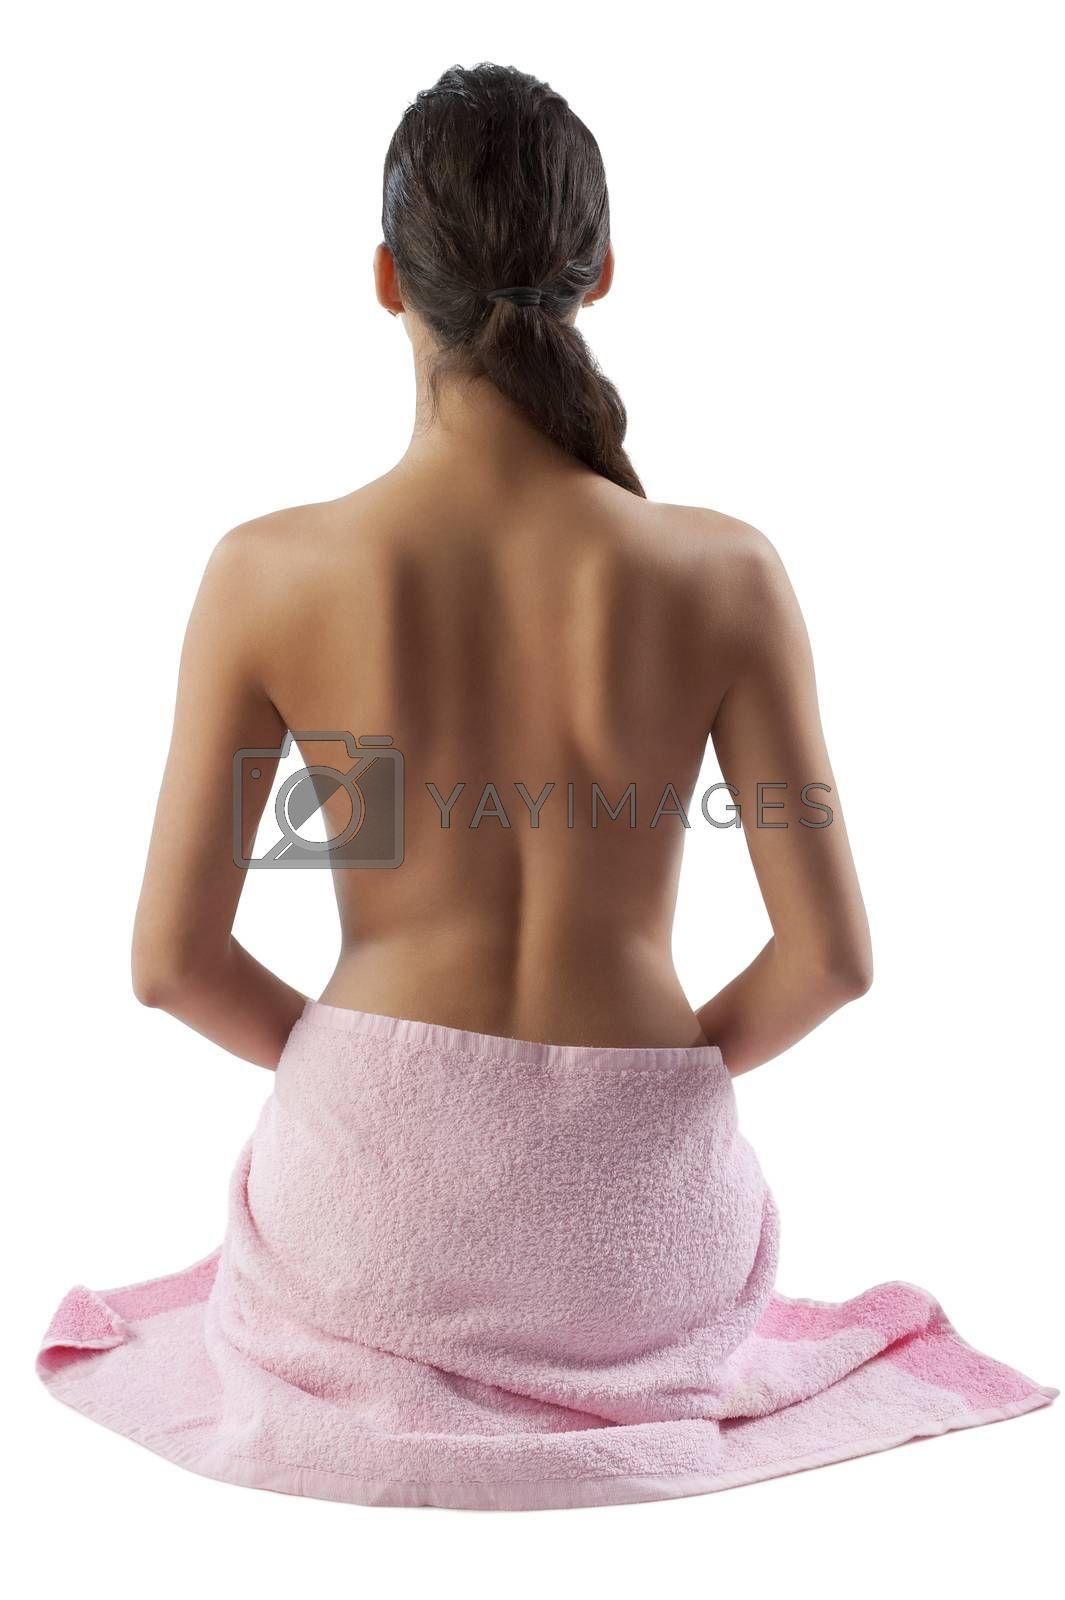 Royalty free image of beautiful nude woman showing her back by fotoCD